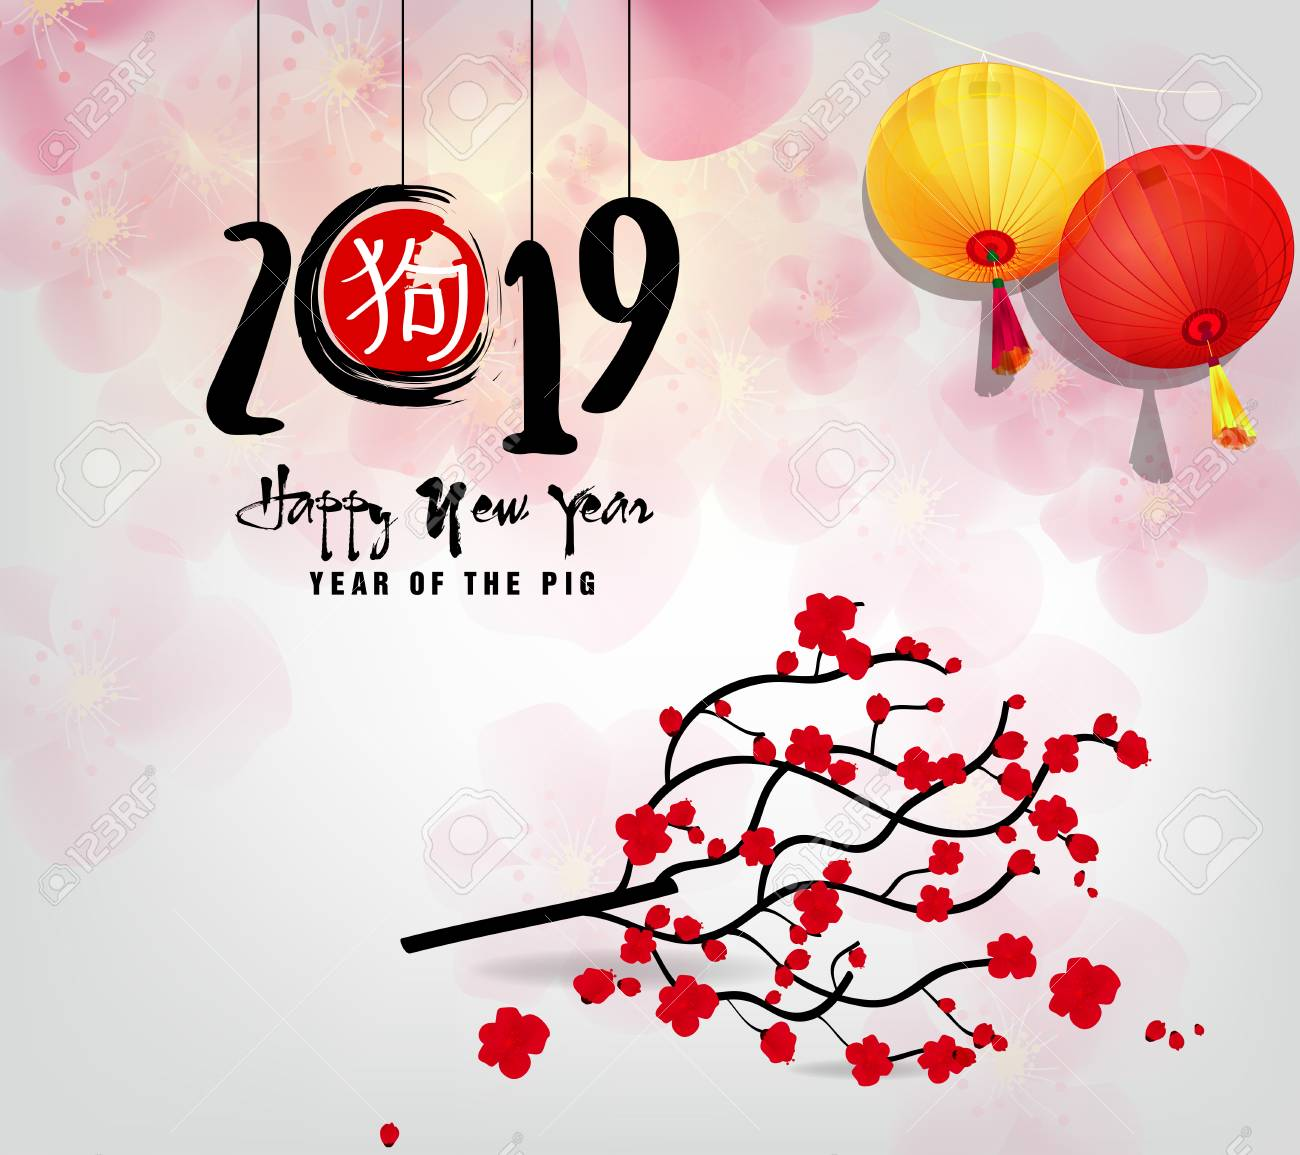 happy new year 2019 chinese new year year of the pig stock vector